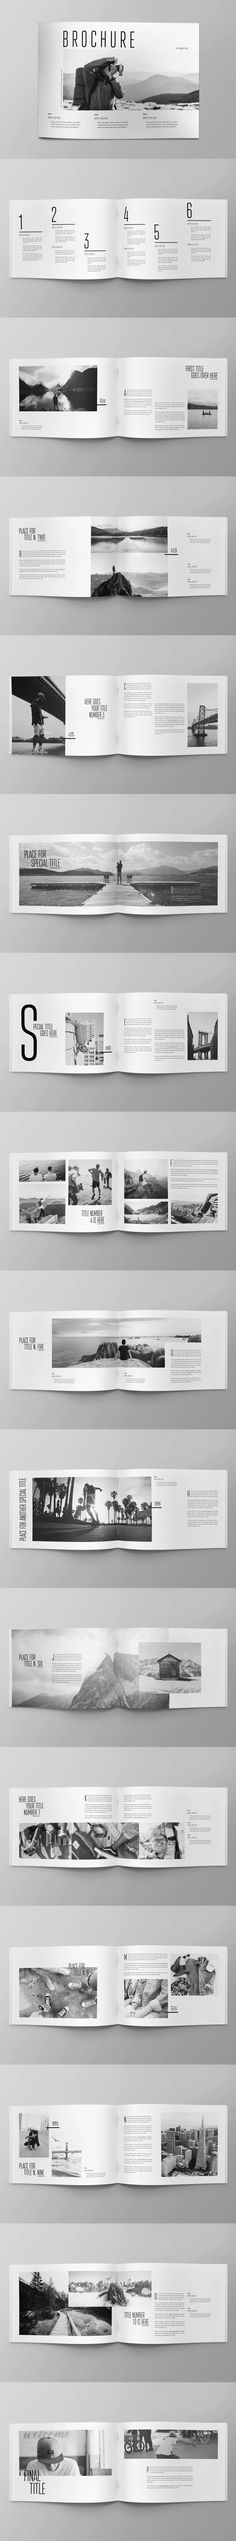 Cool Minimal Photography Brochure Template InDesign INDD - A4 and US Letter Size